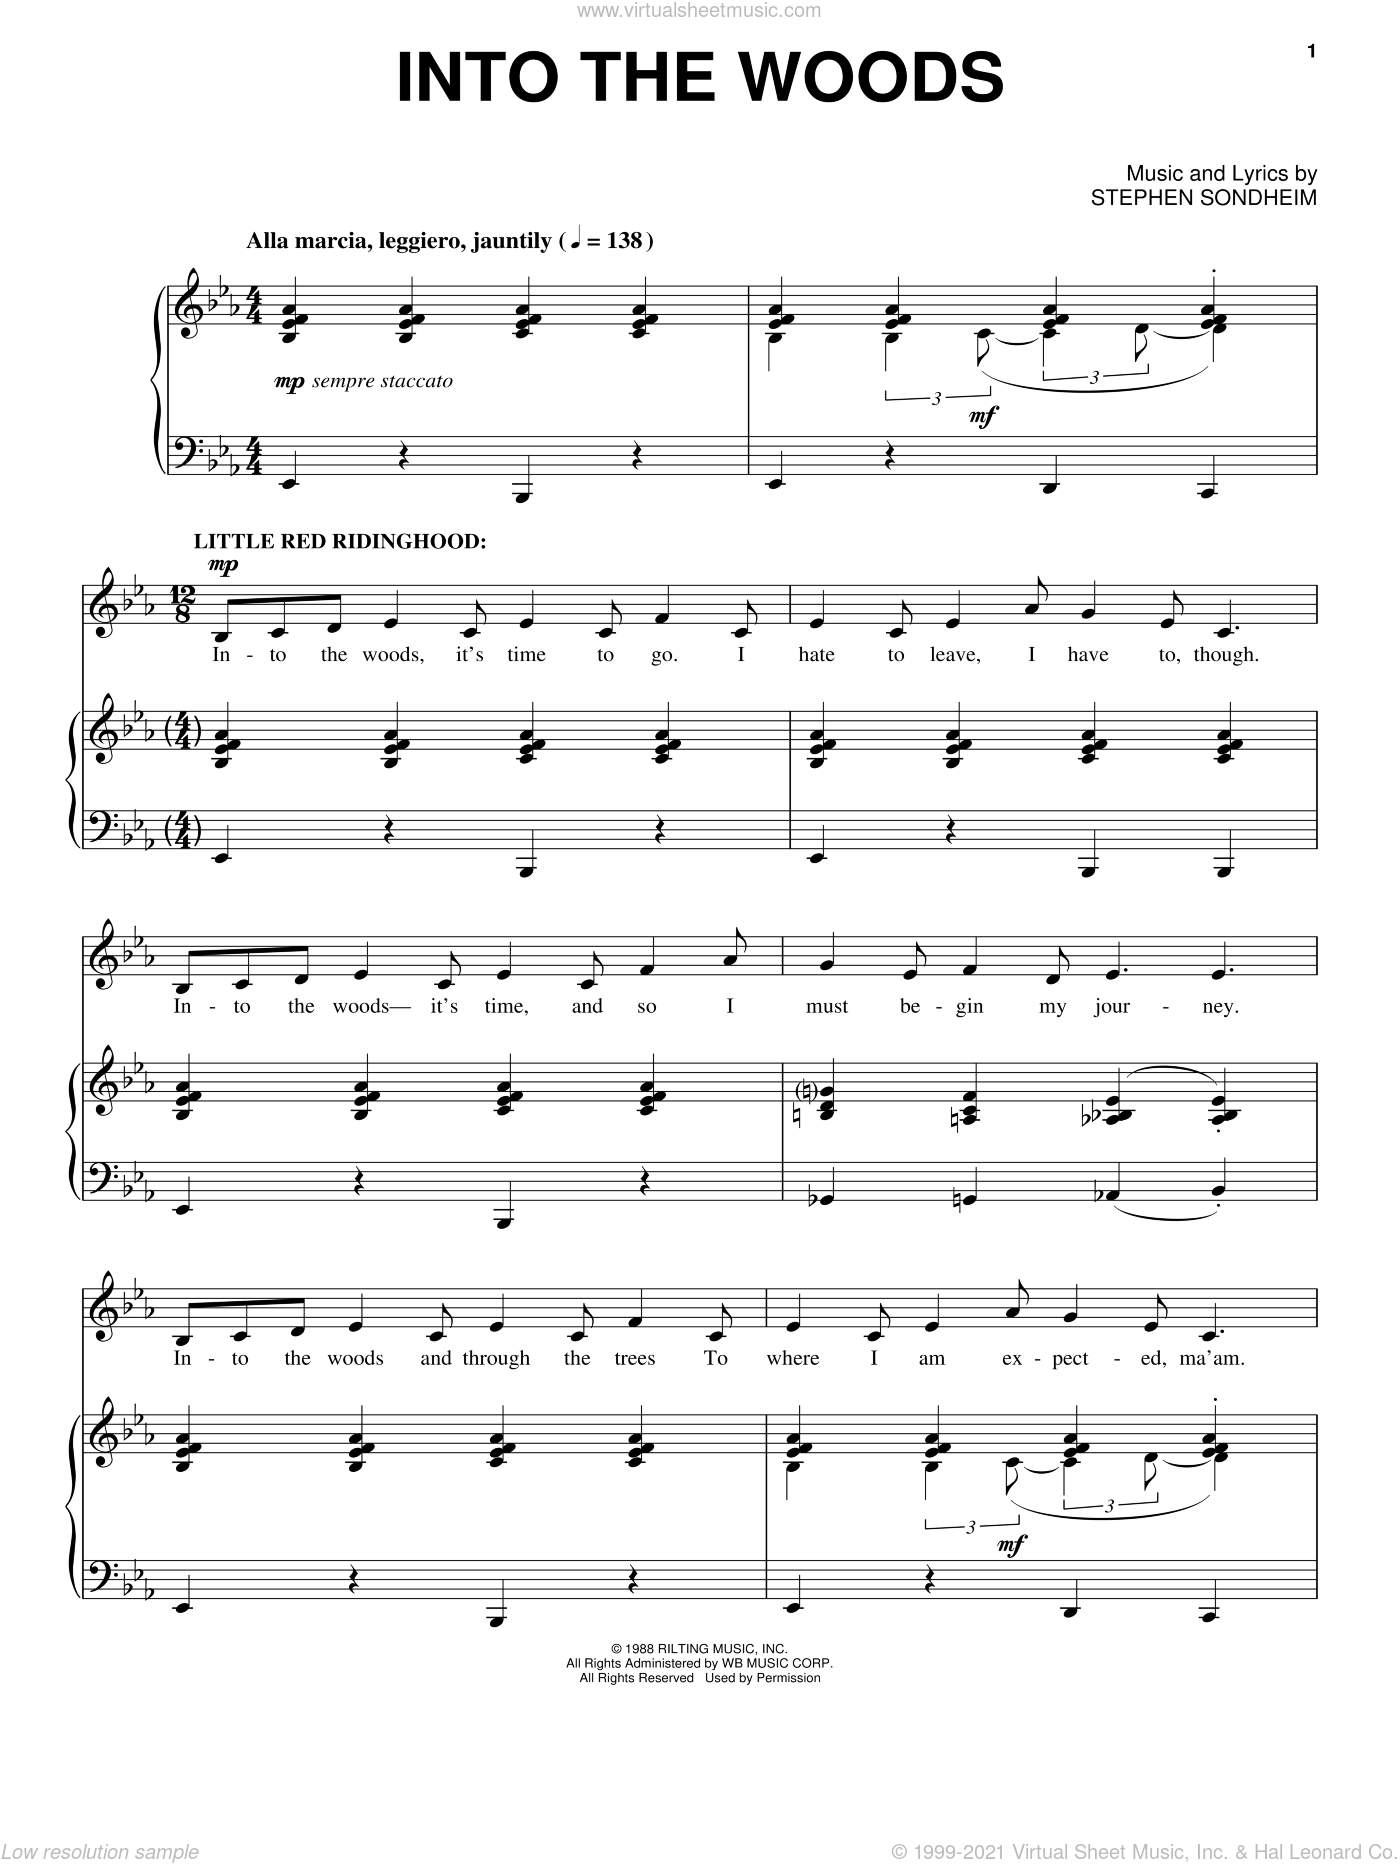 Into The Woods sheet music for voice and piano by Stephen Sondheim and Into The Woods (Musical), intermediate skill level